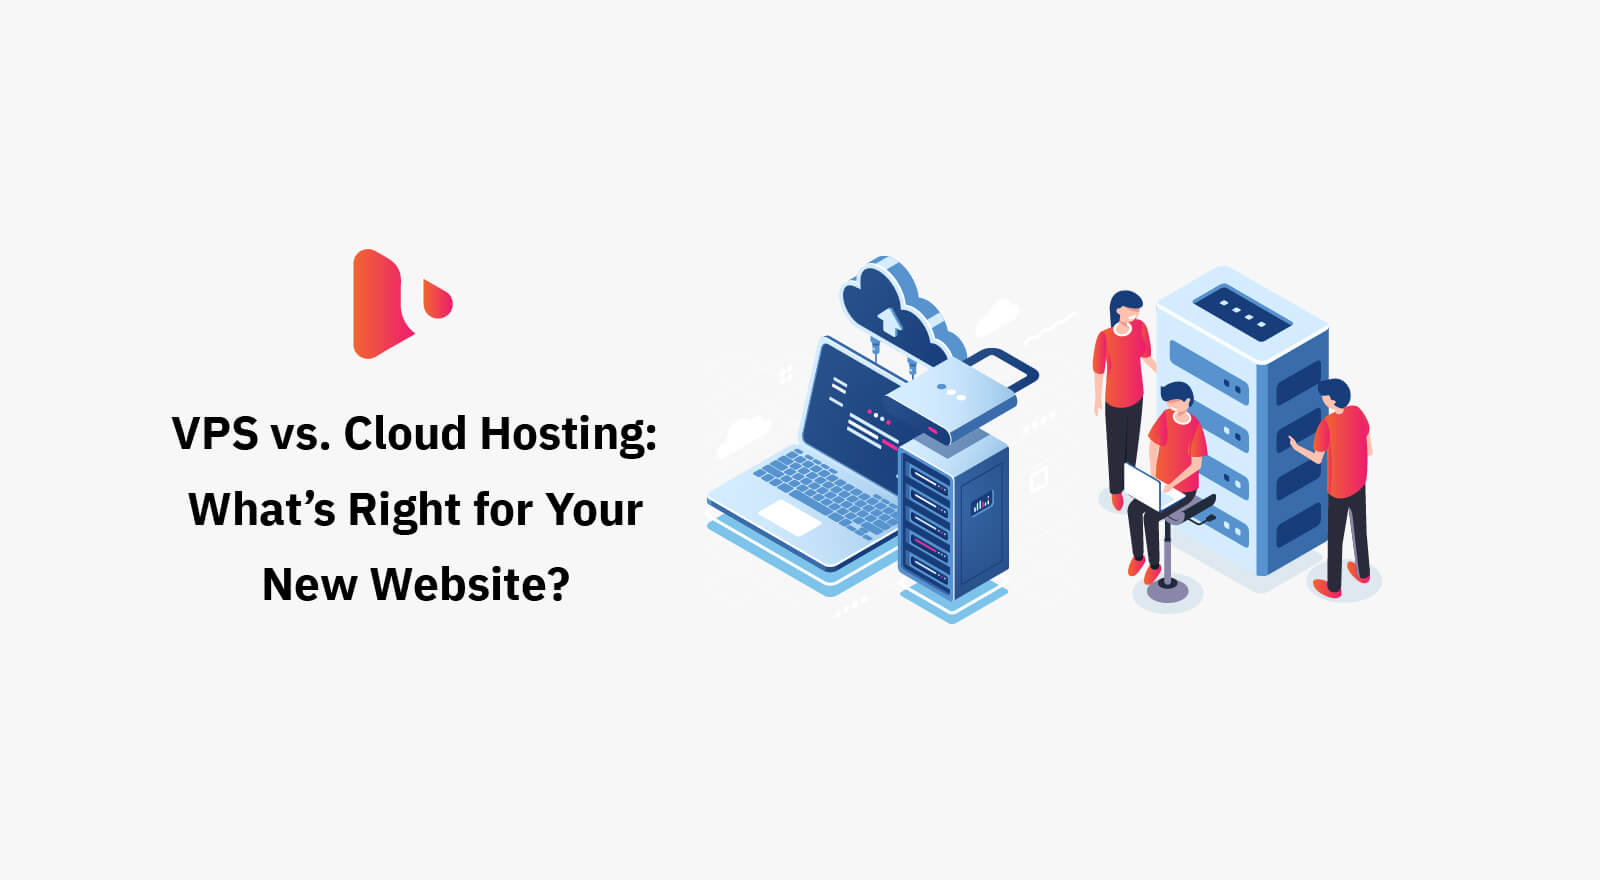 VPS vs. Cloud Hosting: What's Right for Your New Website?